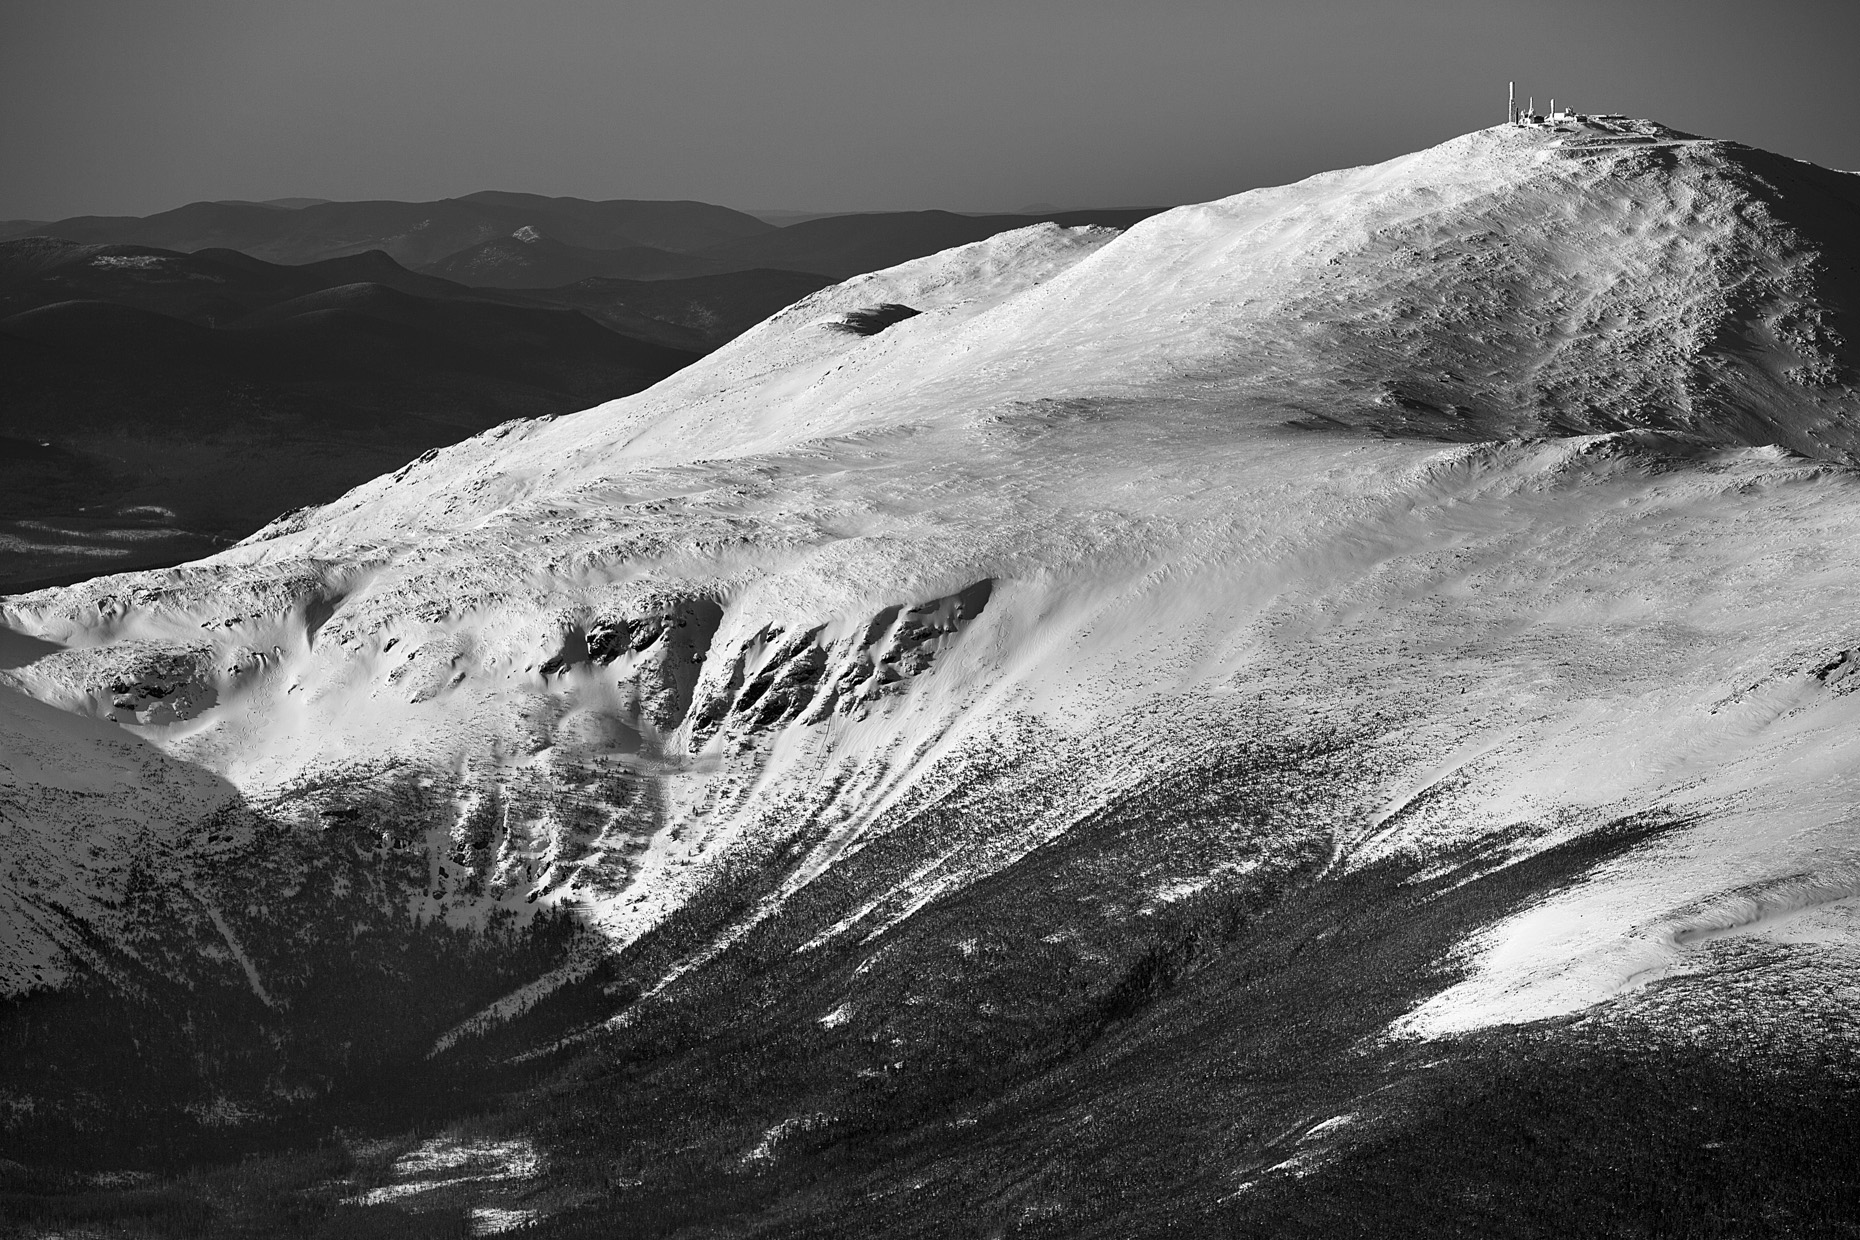 BN_WhiteMountains-4379